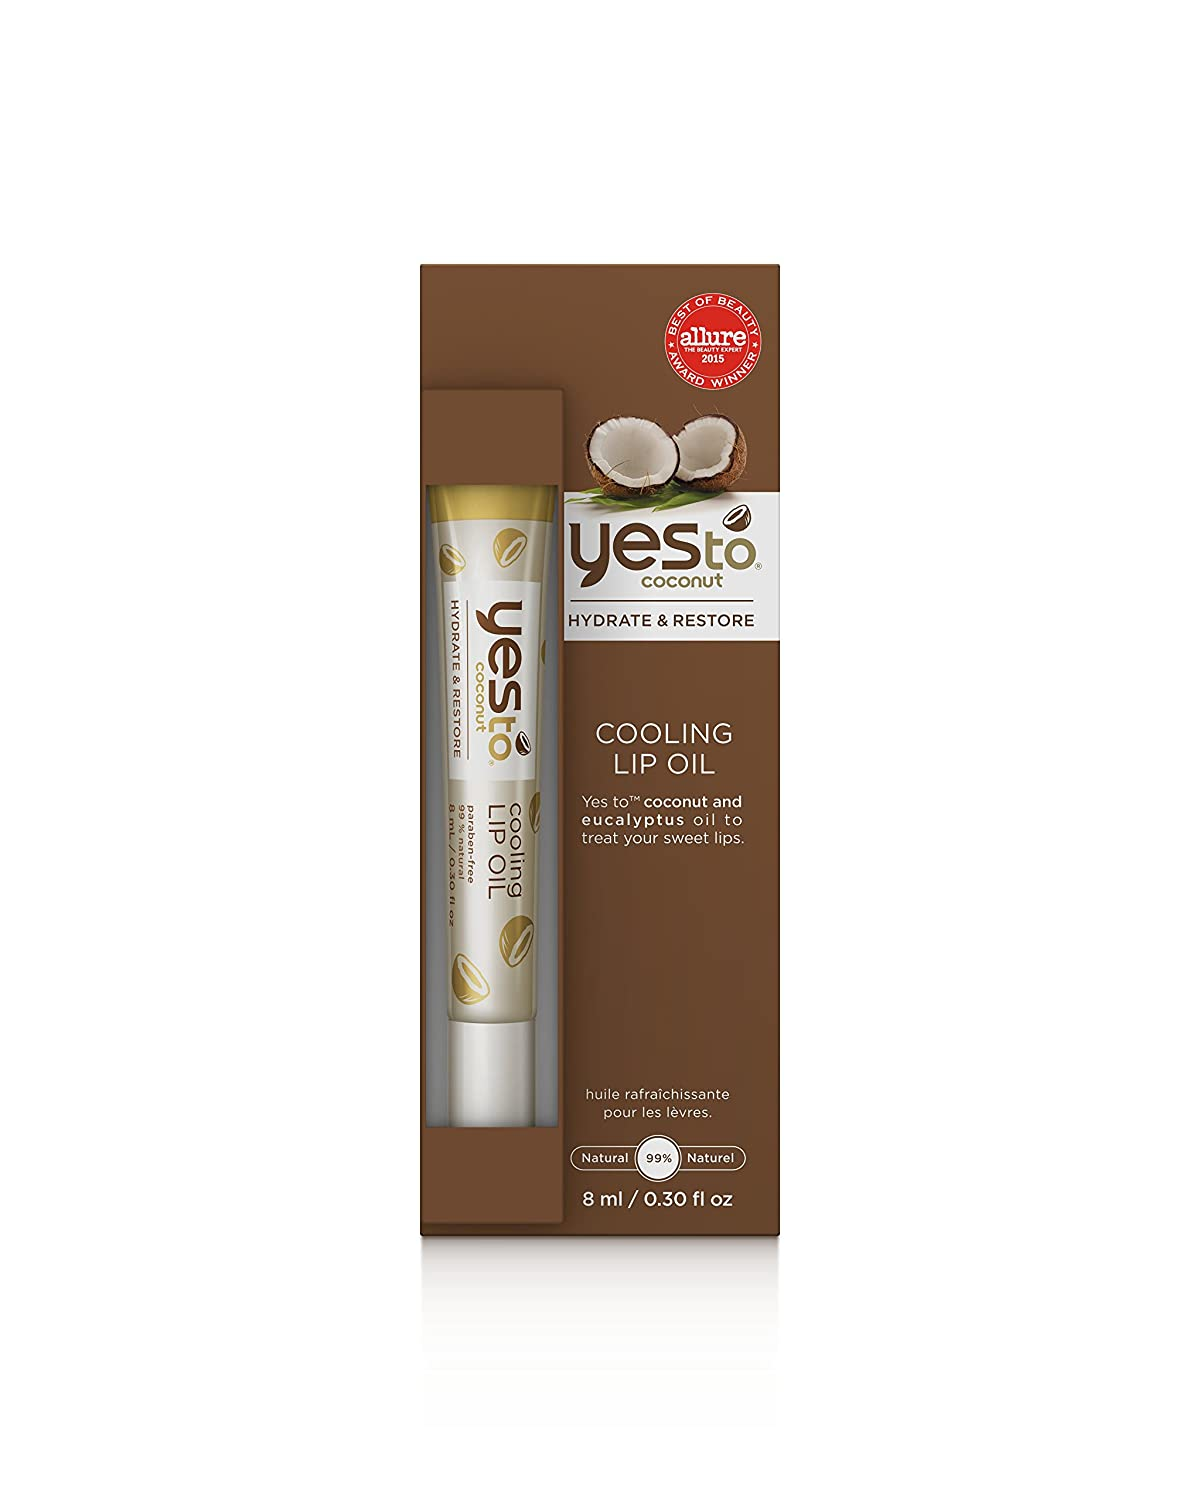 Buy Yes to Coconuts Cooling Lip Oil - 0.3 oz Online at Low Prices in India  - Amazon.in